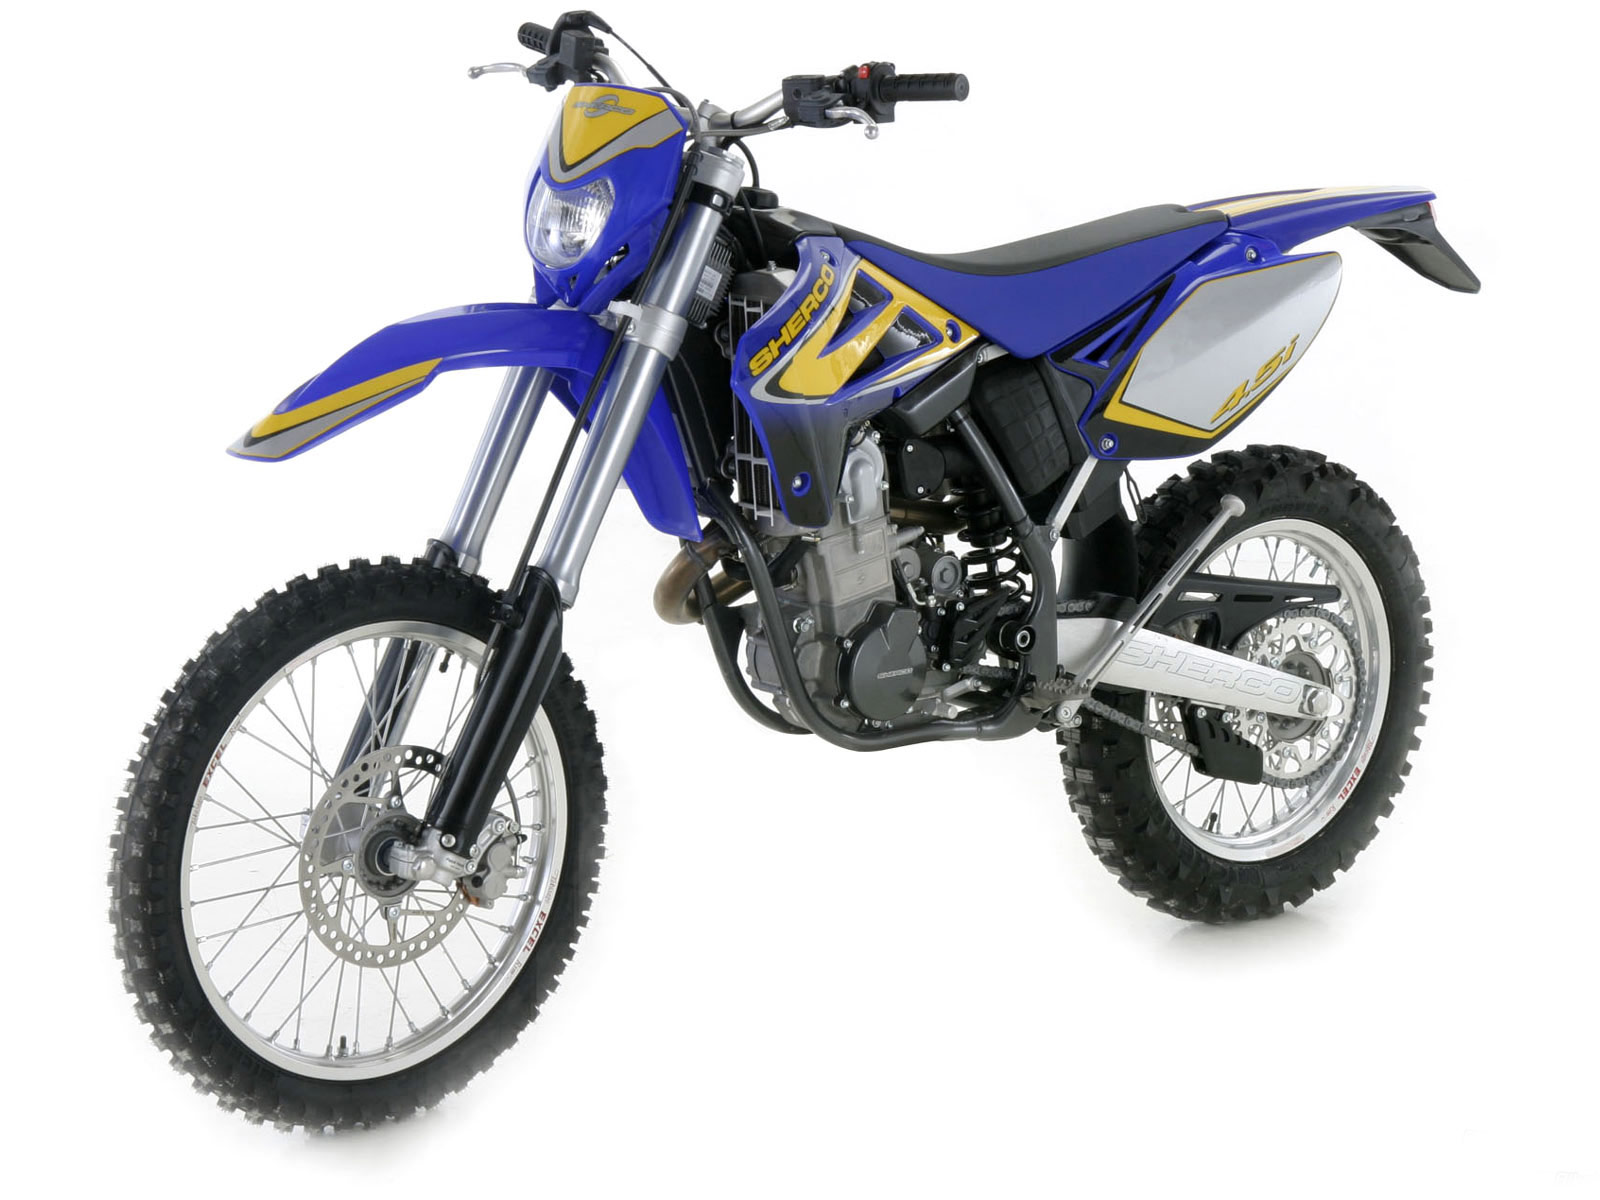 2008 sherco 125 enduro shark replica moto zombdrive com. Black Bedroom Furniture Sets. Home Design Ideas